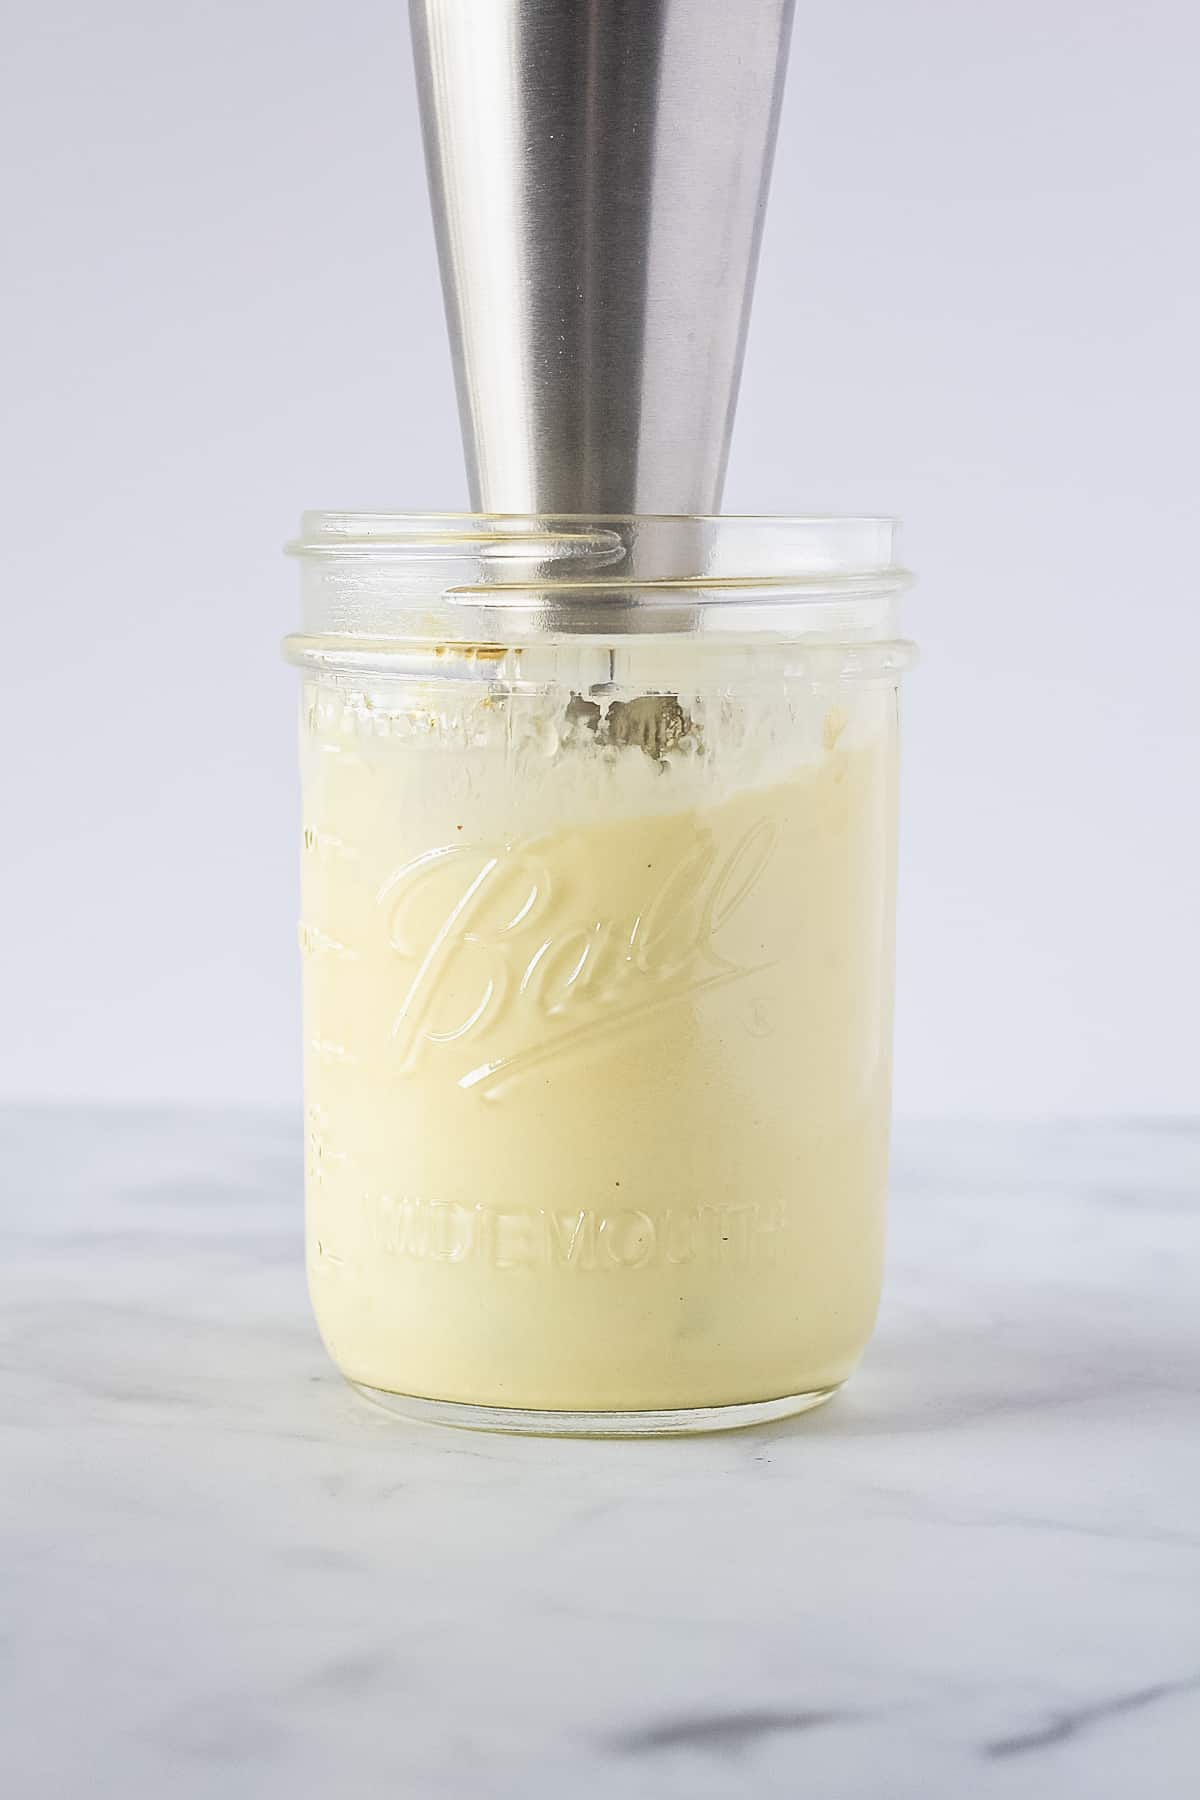 Immersion blender in a pint mason jar with homemade mayo.